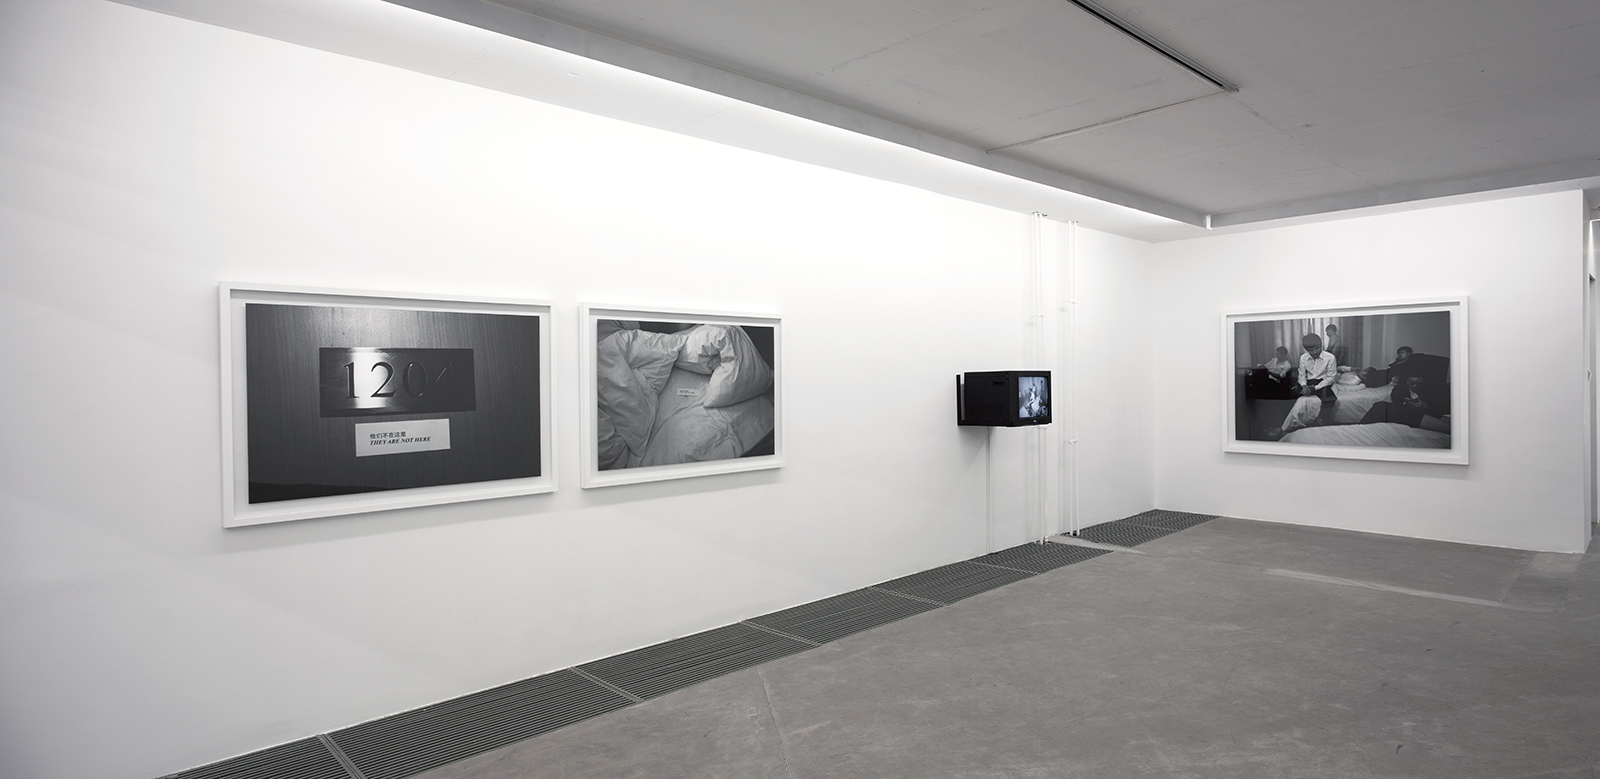 They Are Not Here , 2010. Installation view, Galerie Urs Meile, Beijing, China, 2011.